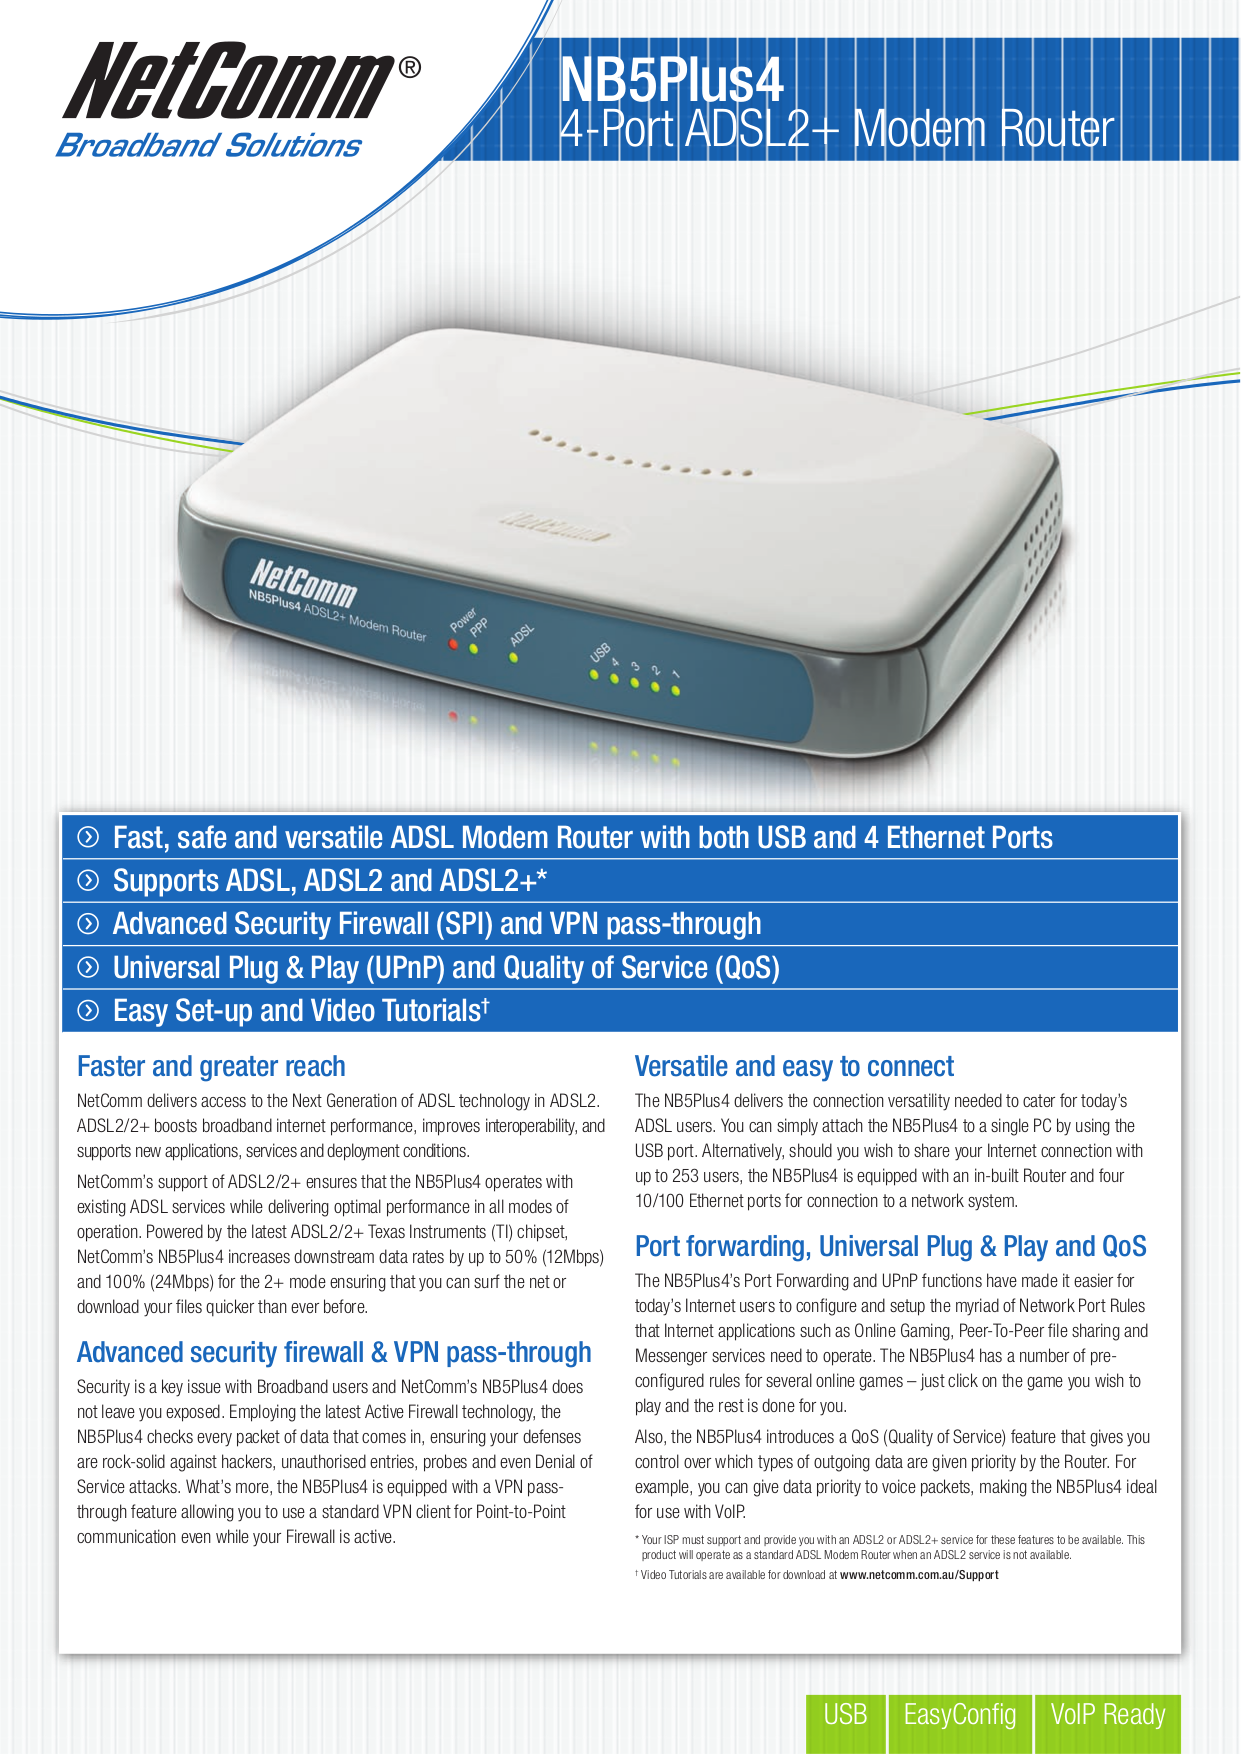 pdf for Netcomm Router NB5Plus4 manual